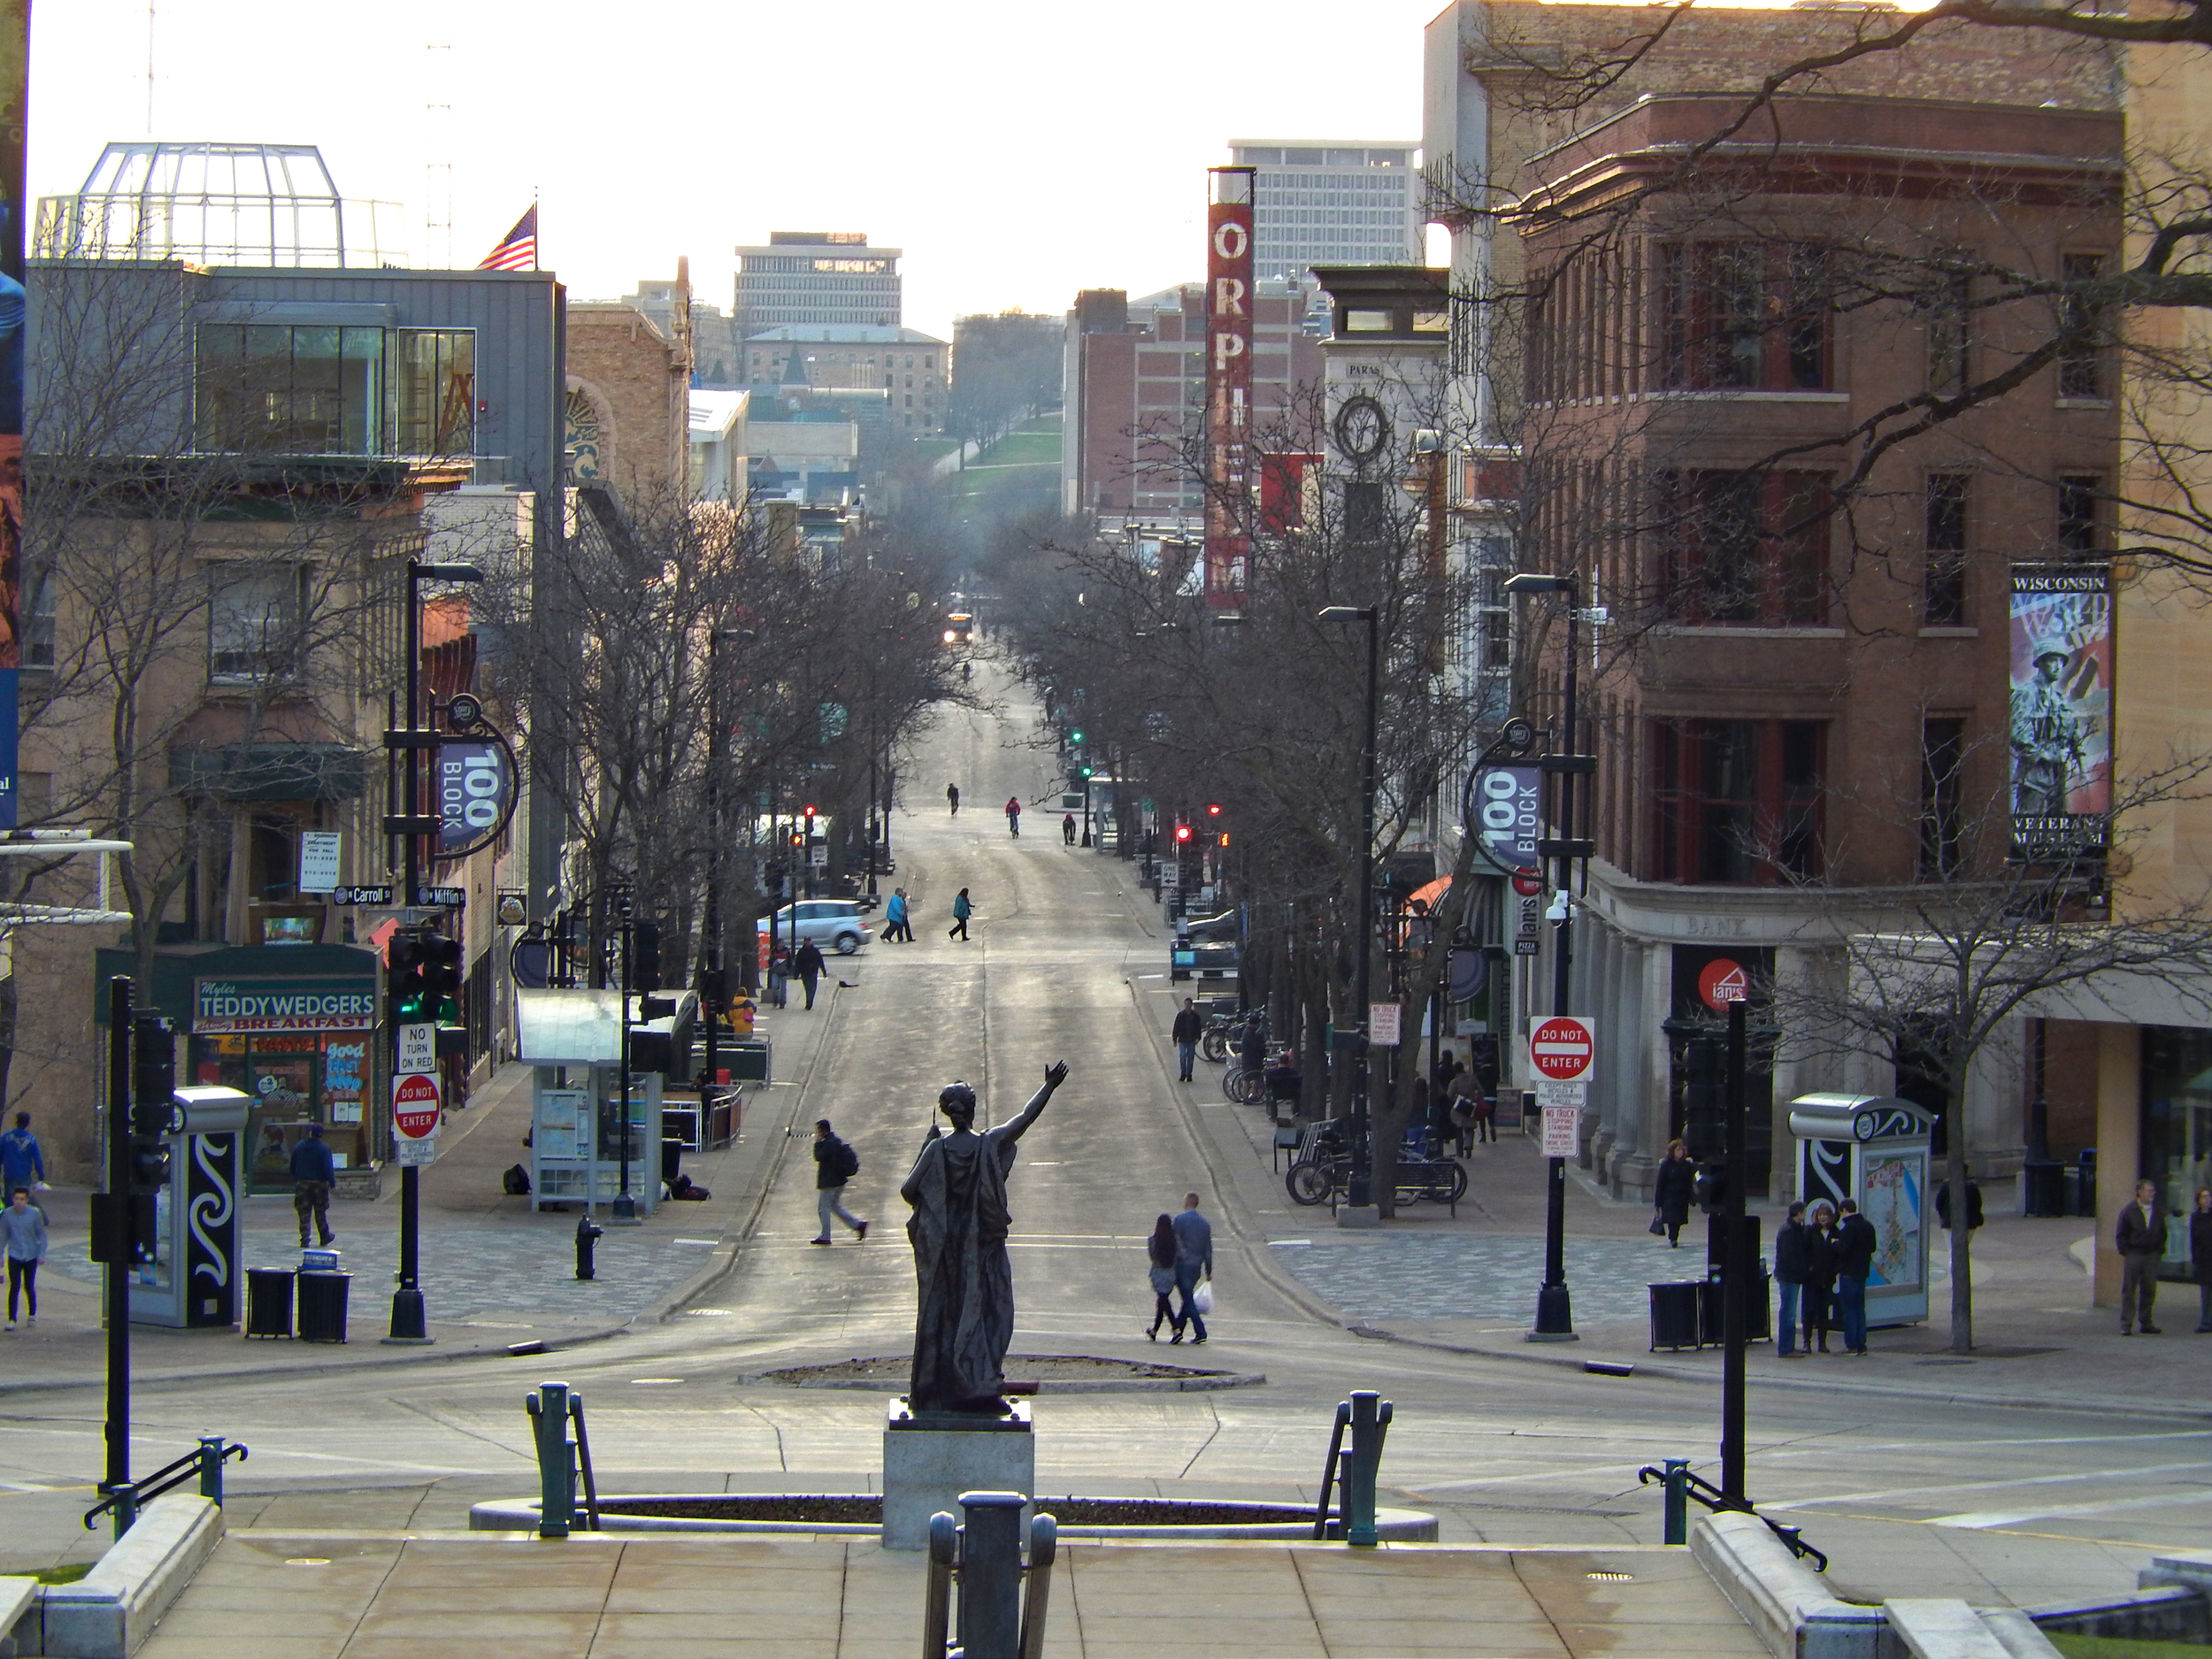 State Street historic commercial district - Madison, WI